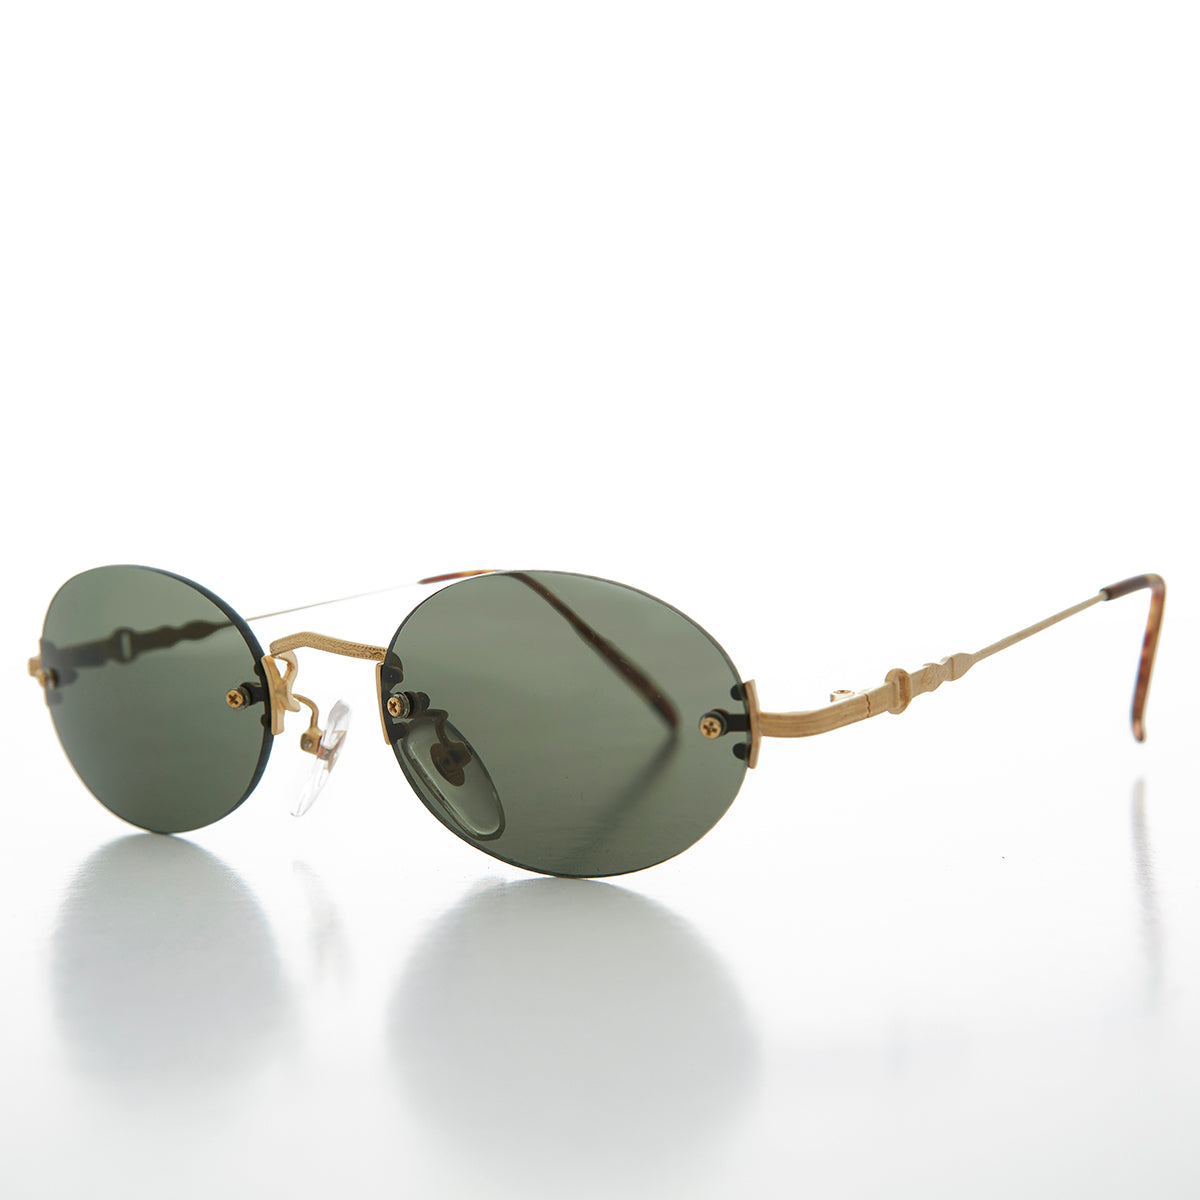 Chic Oval Rimless 90s Minimalistic Vintage Sunglass